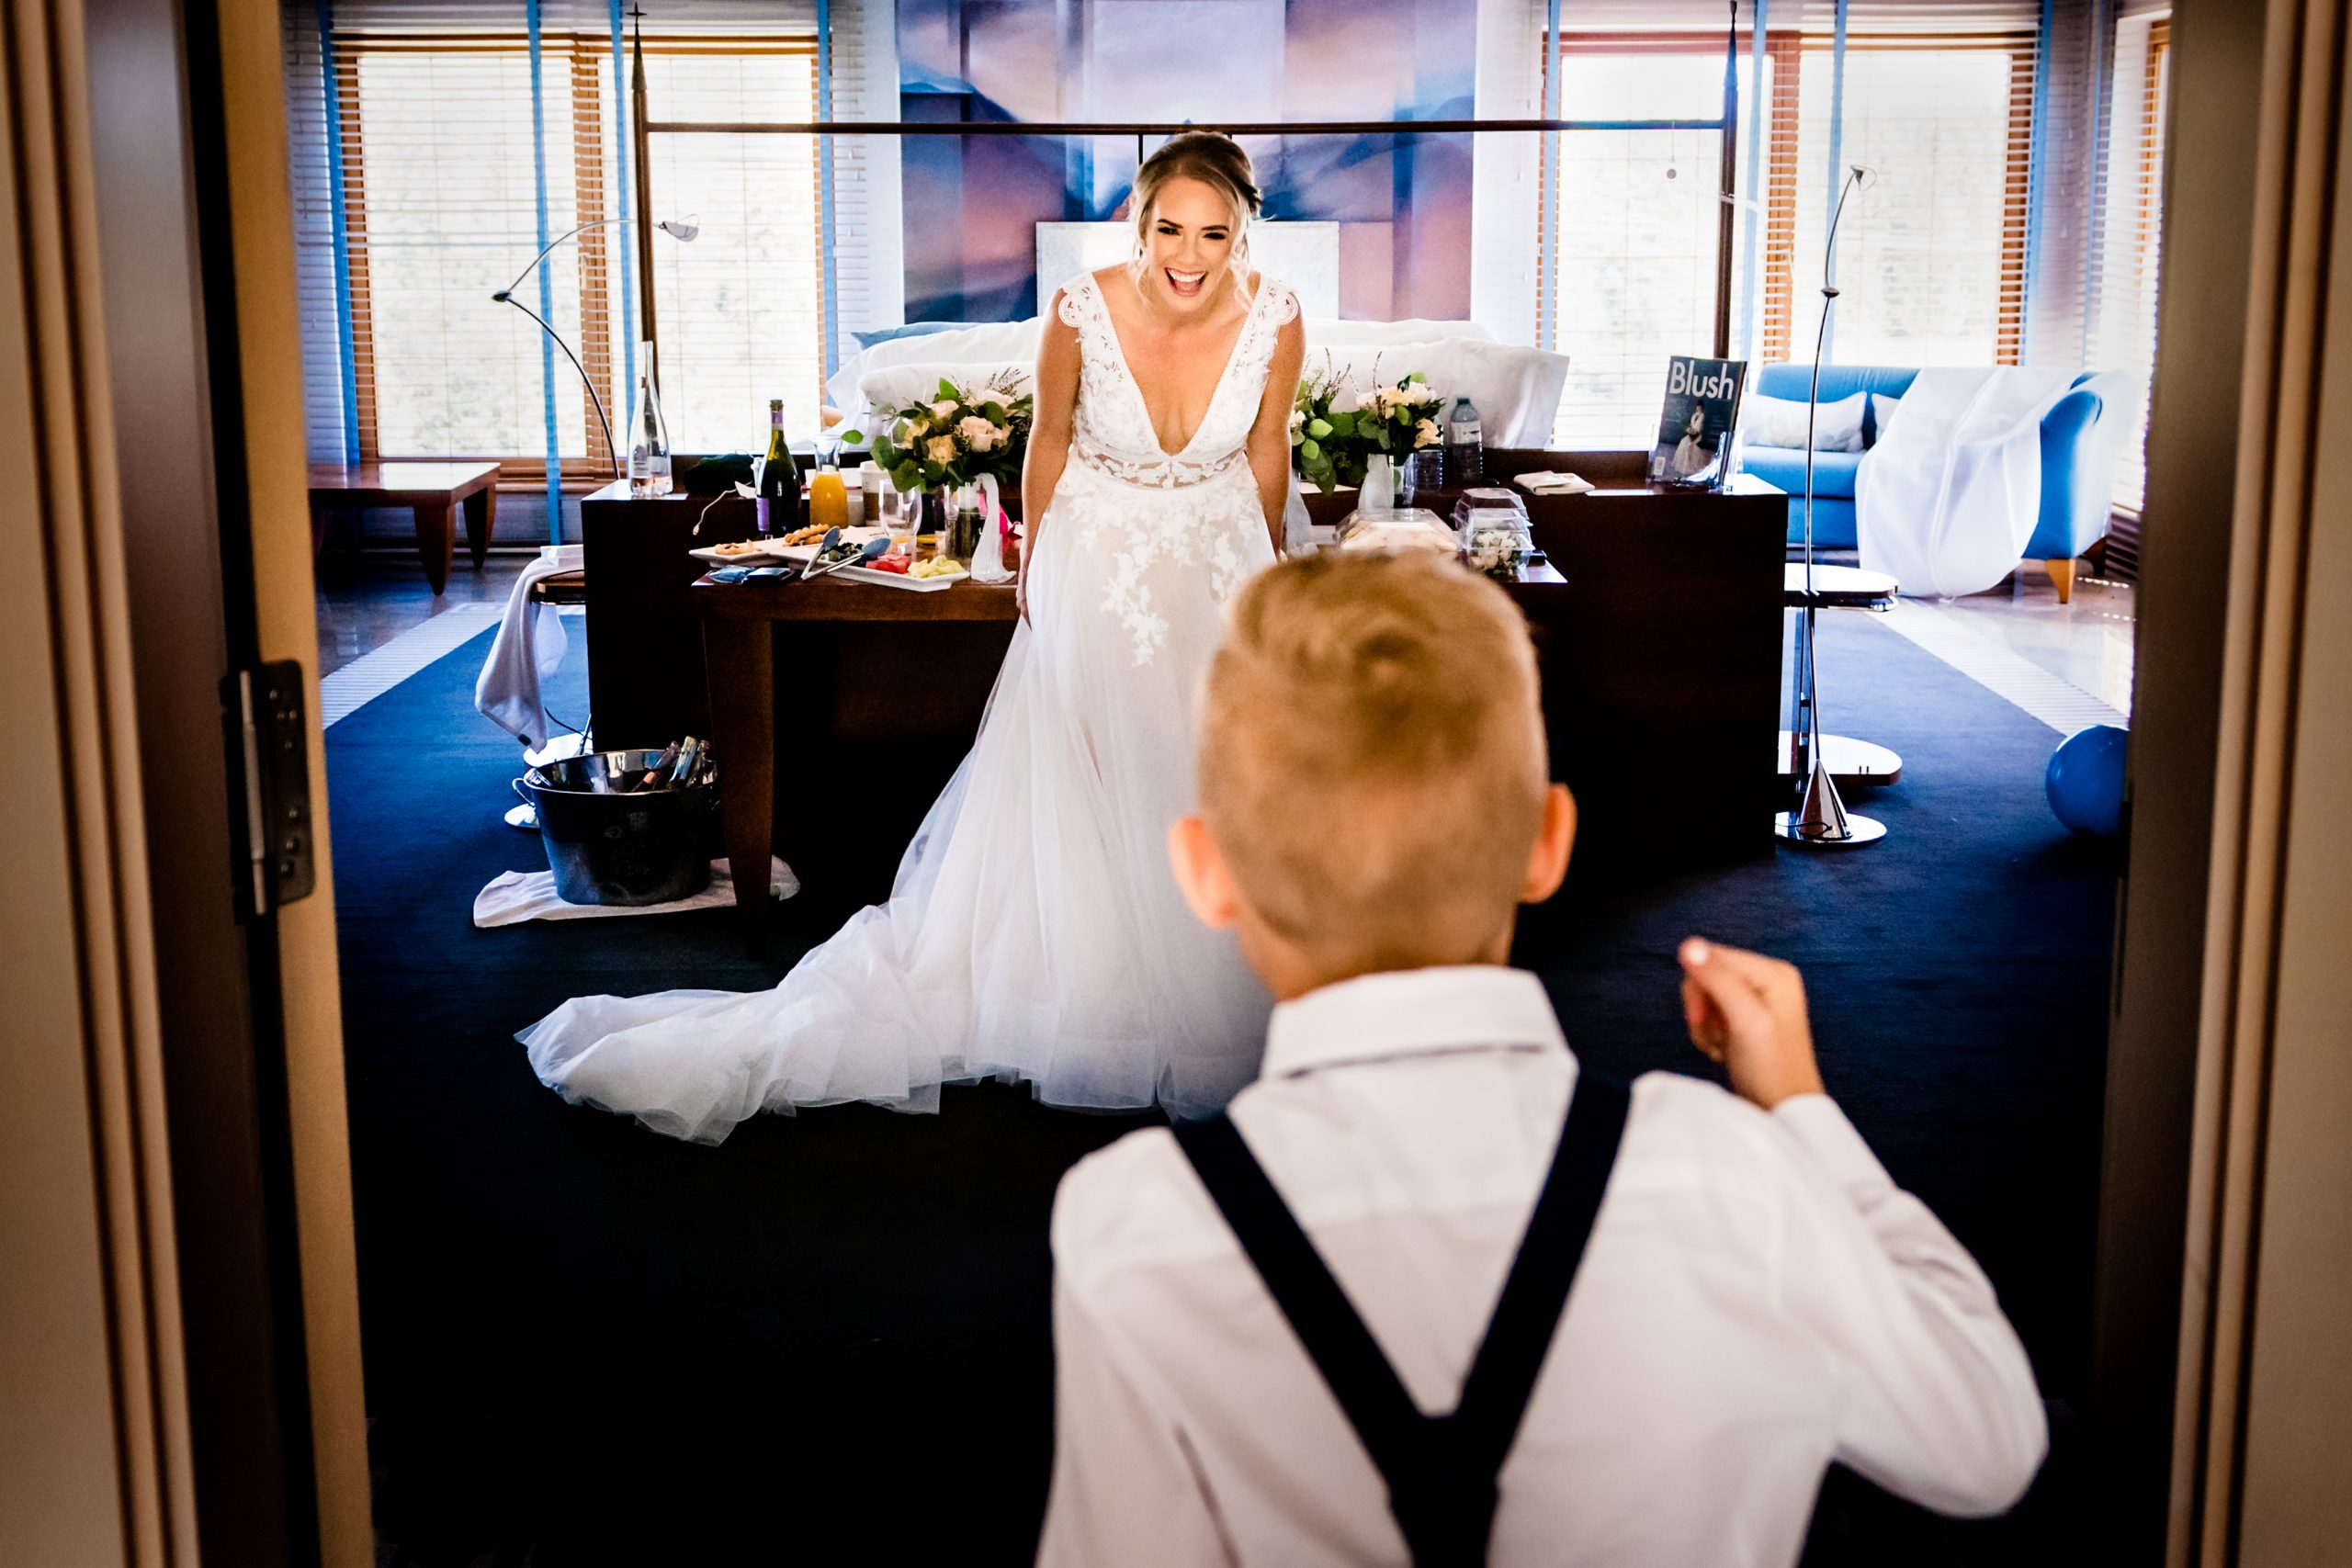 Boy sees his mother in her wedding dress for the first time.